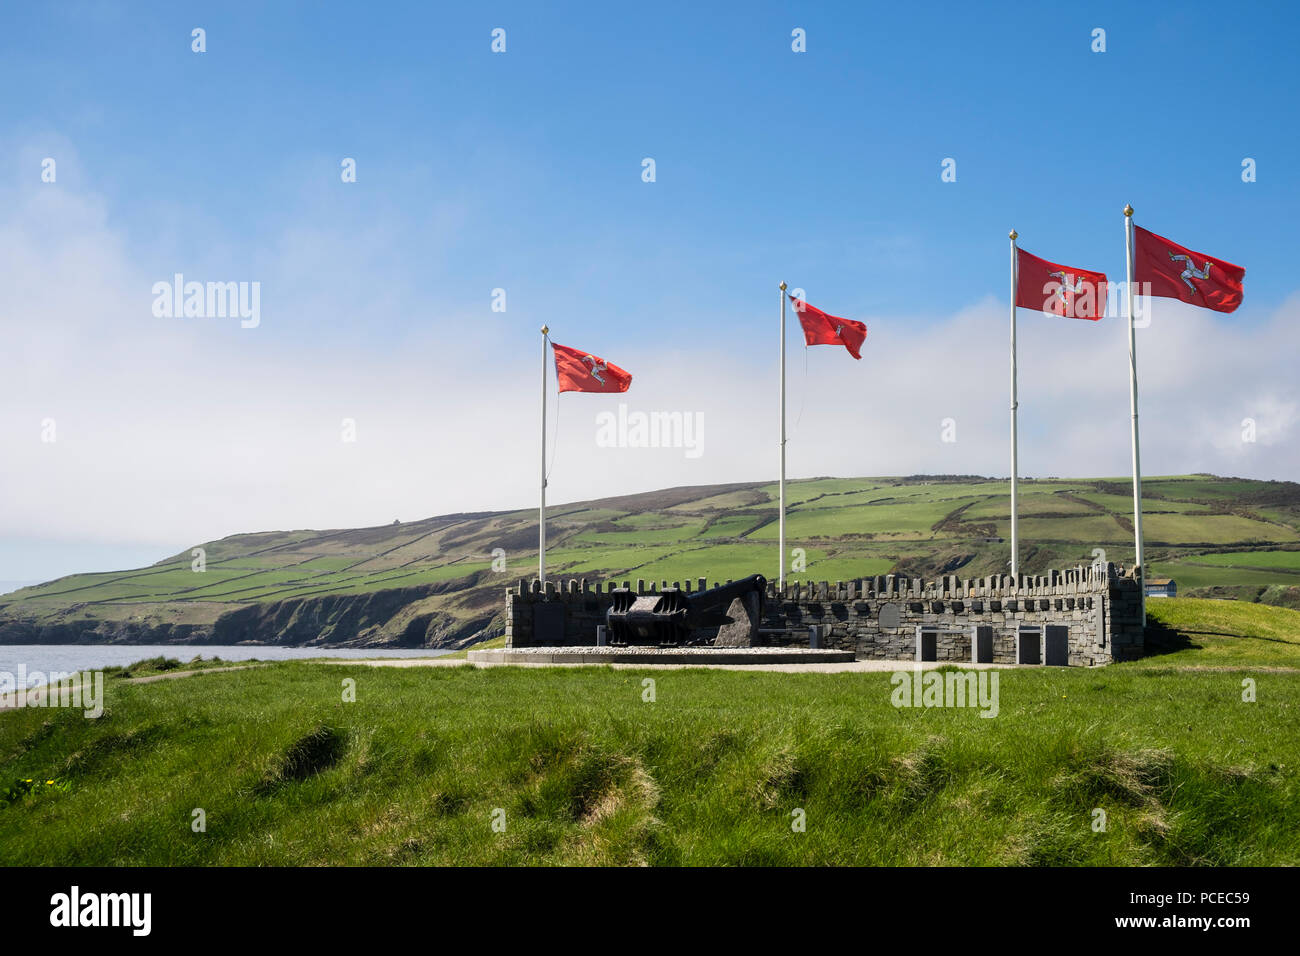 Manx flags flying at Dunkirk Memorial on coast at Kallow Point, Port St Mary, Isle of Man, British Isles - Stock Image